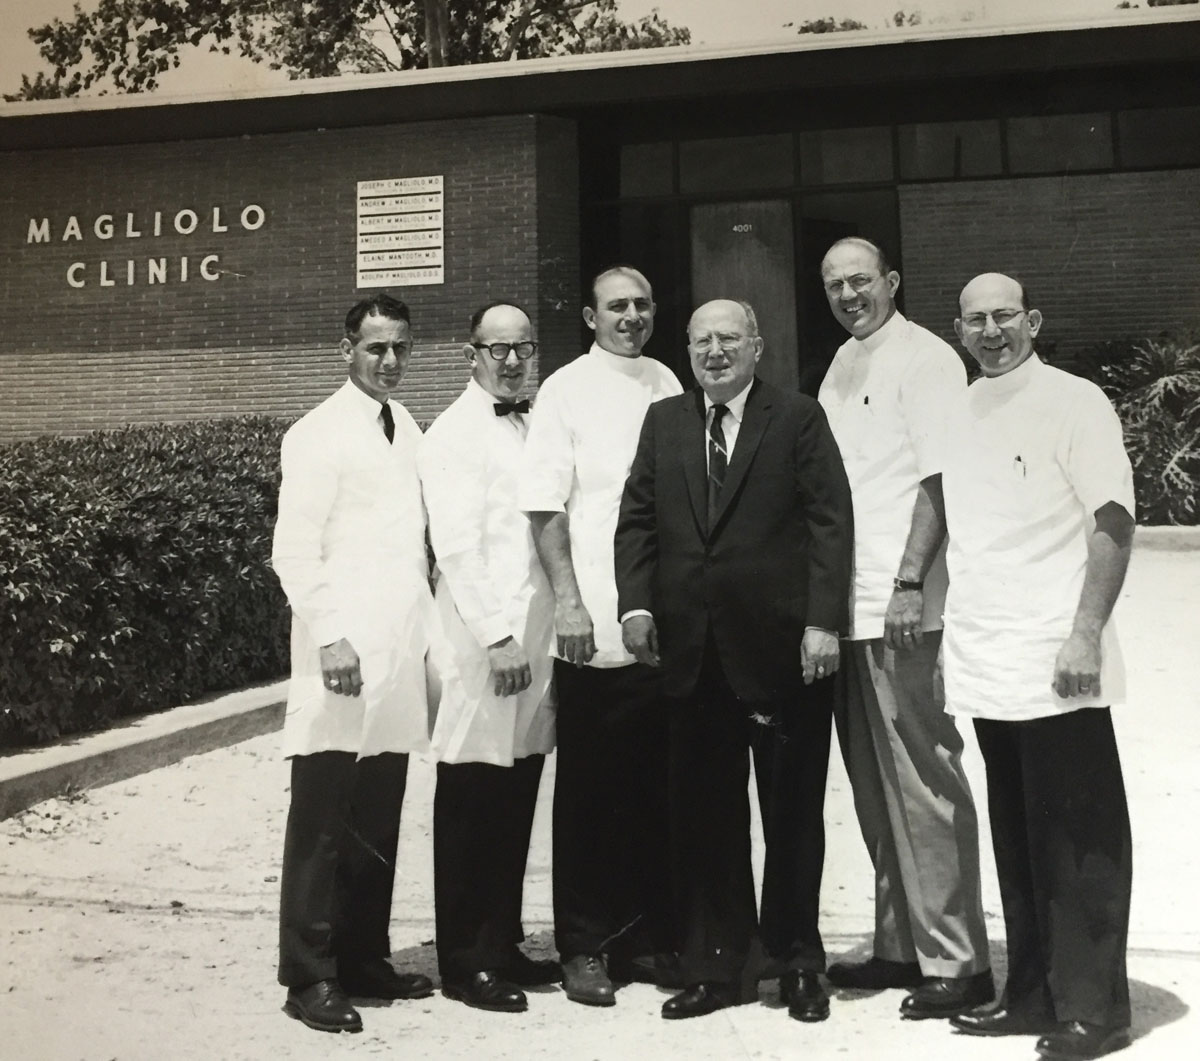 Dr. Amedeo, Dr. Joe, Dr. Adolph, Grandpa Andrew, Dr. Albert and Dr. Andrew.